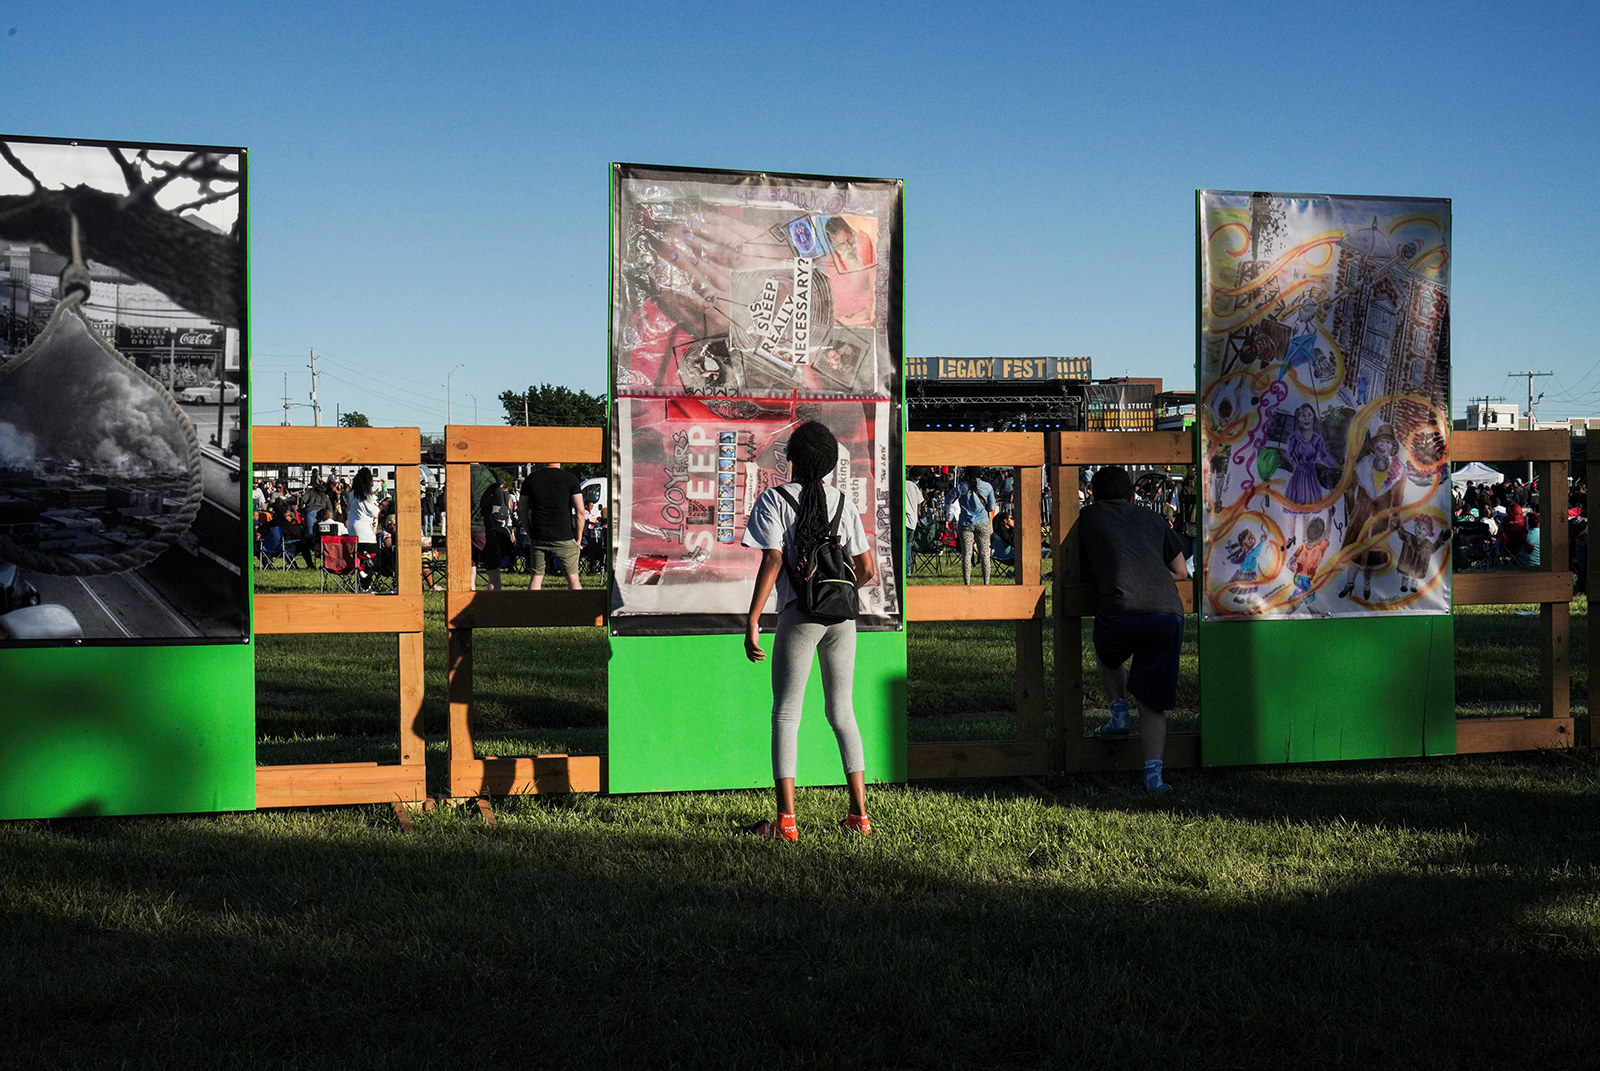 A woman stands behind a fence by three tall vertical artworks that depict the Tulsa massacre through photography, collage, and paint